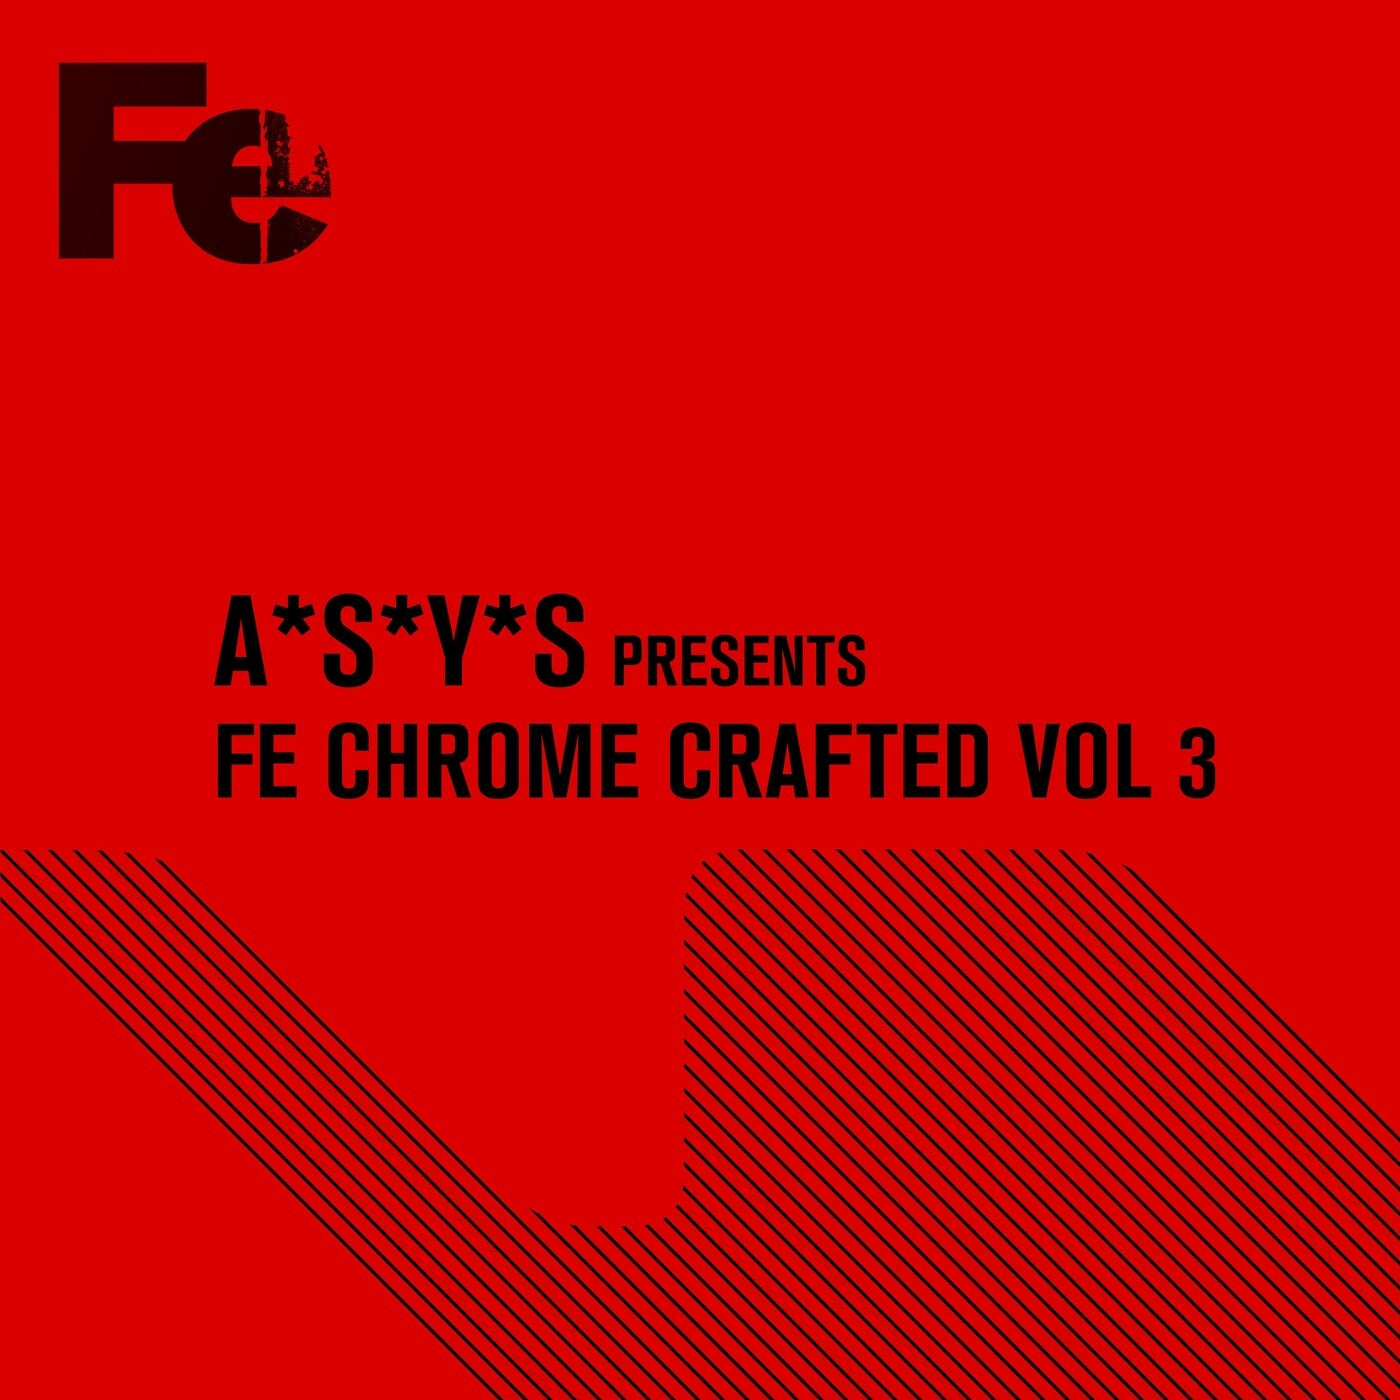 A*S*Y*S Presents Fe Chrome Crafted, Vol. 3